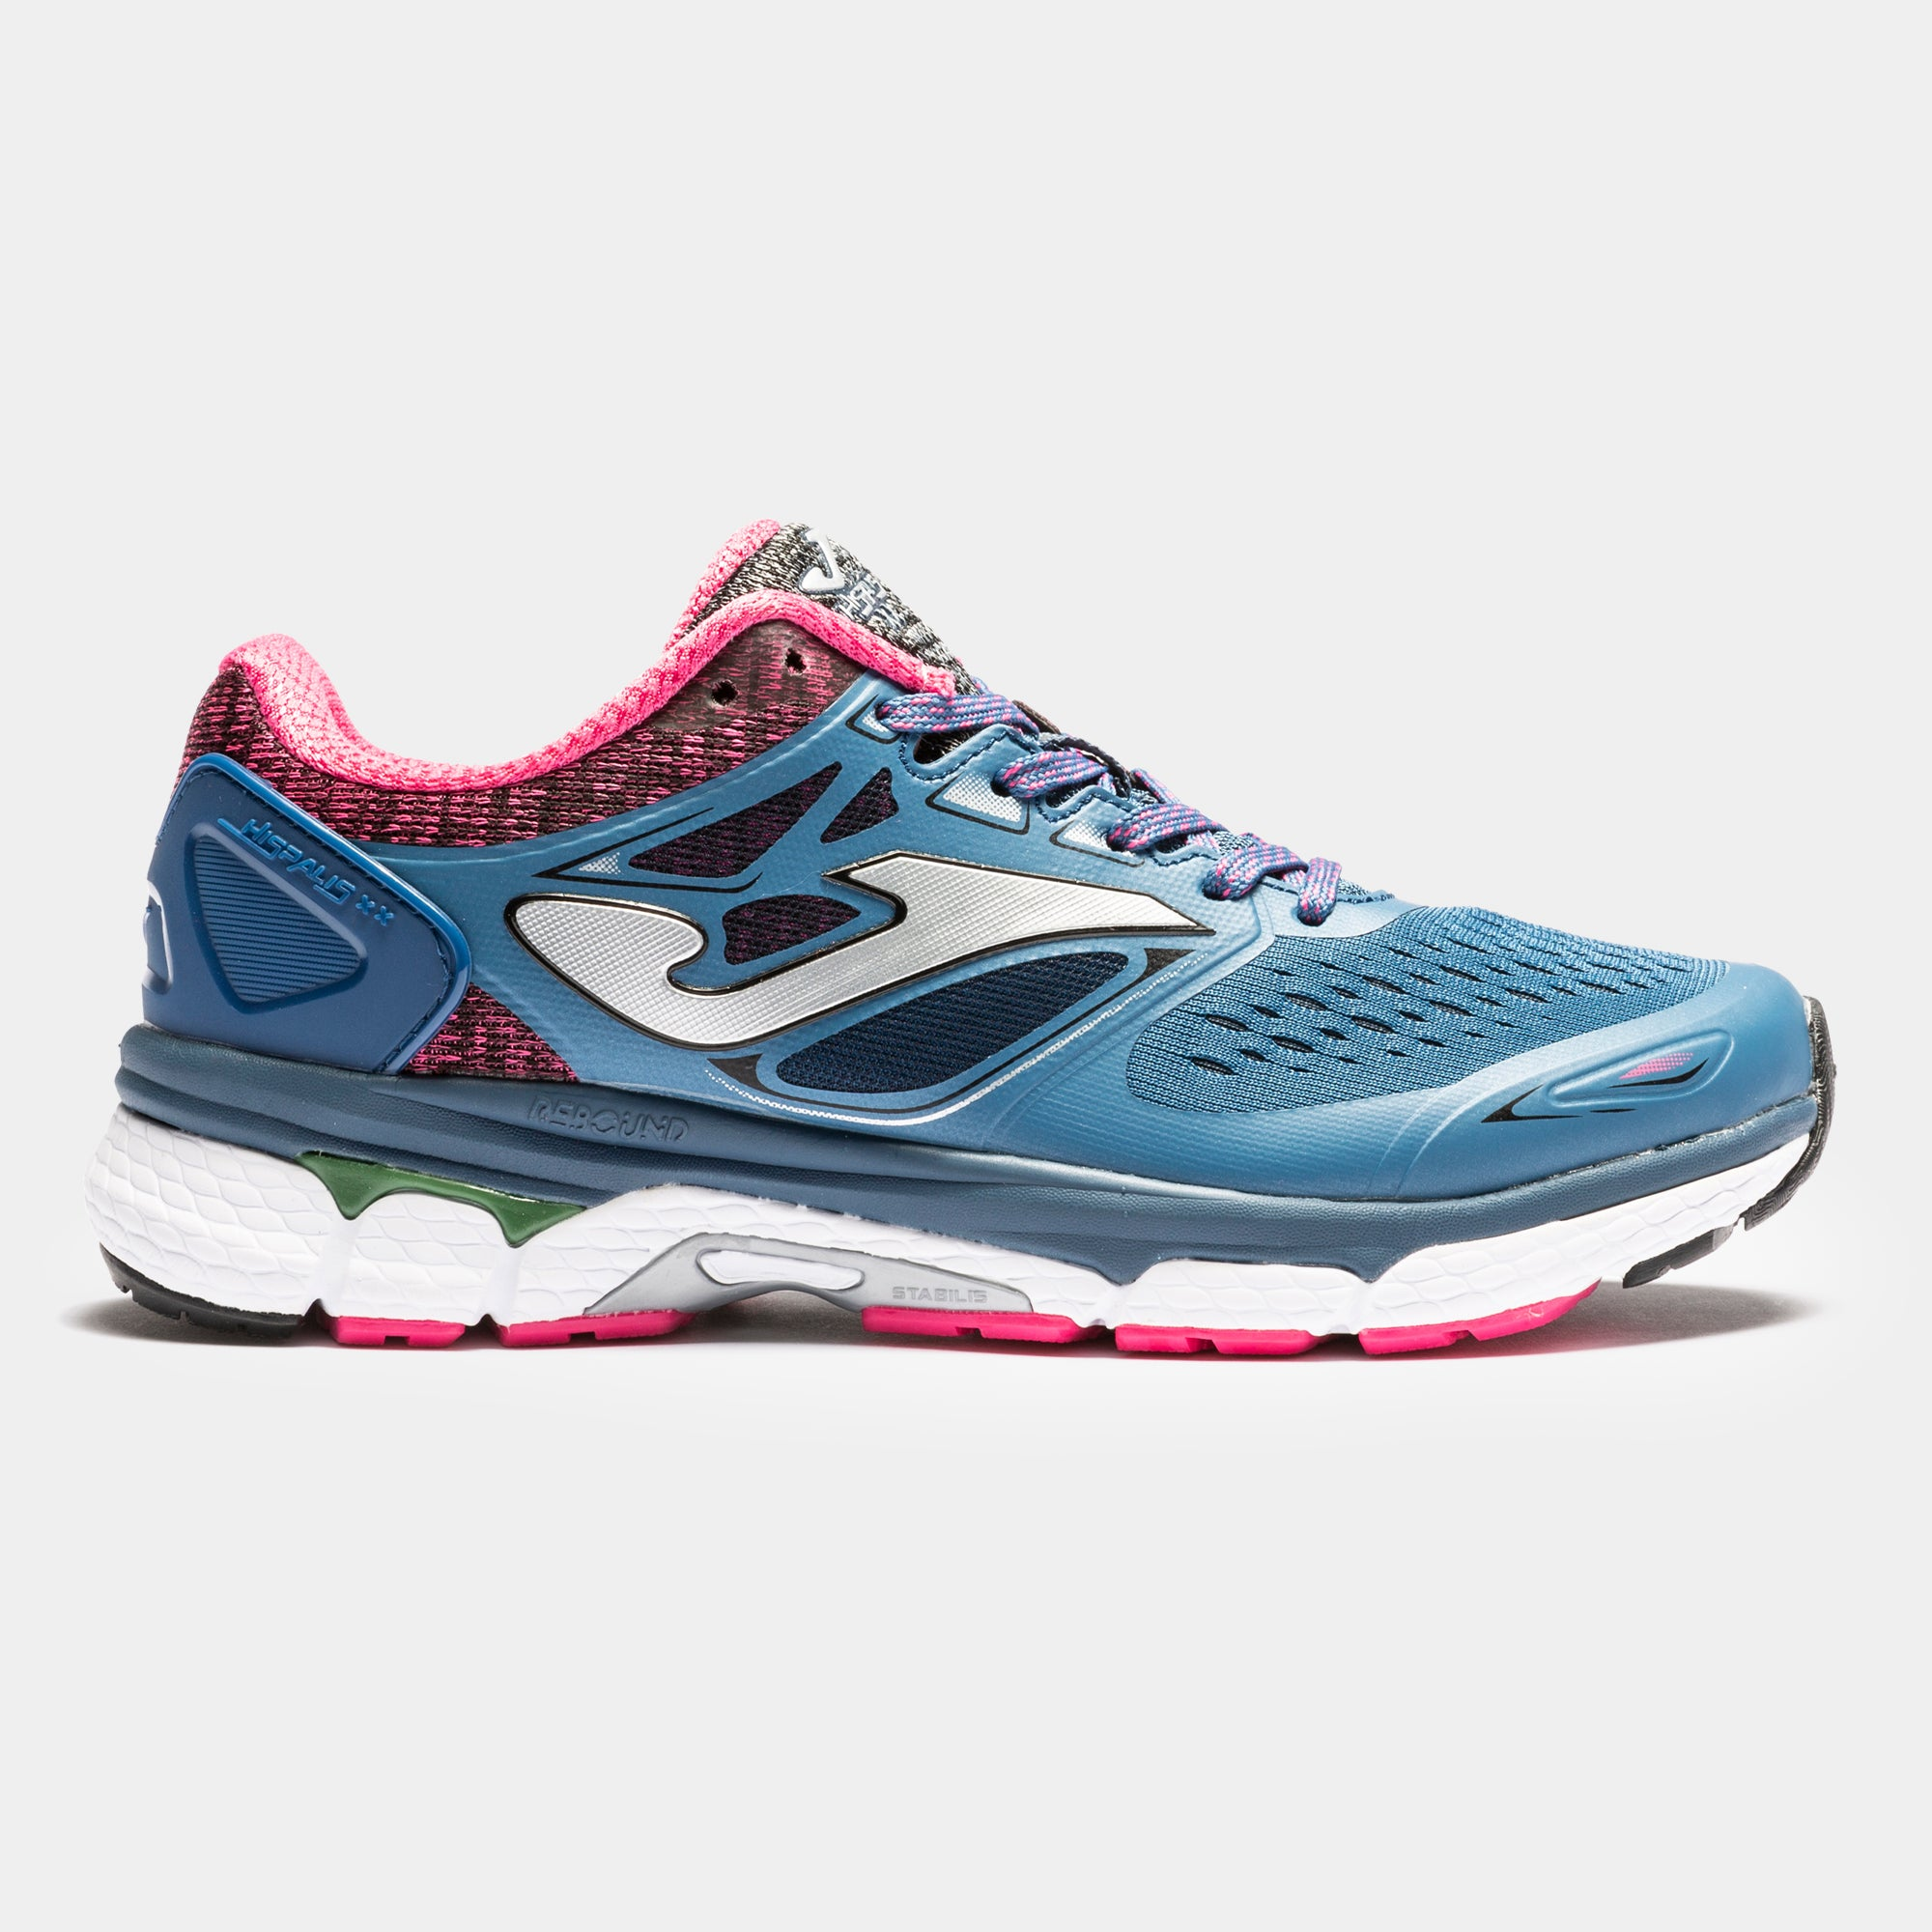 Scarpa Running R.Hispalis Lady. 903 Navy